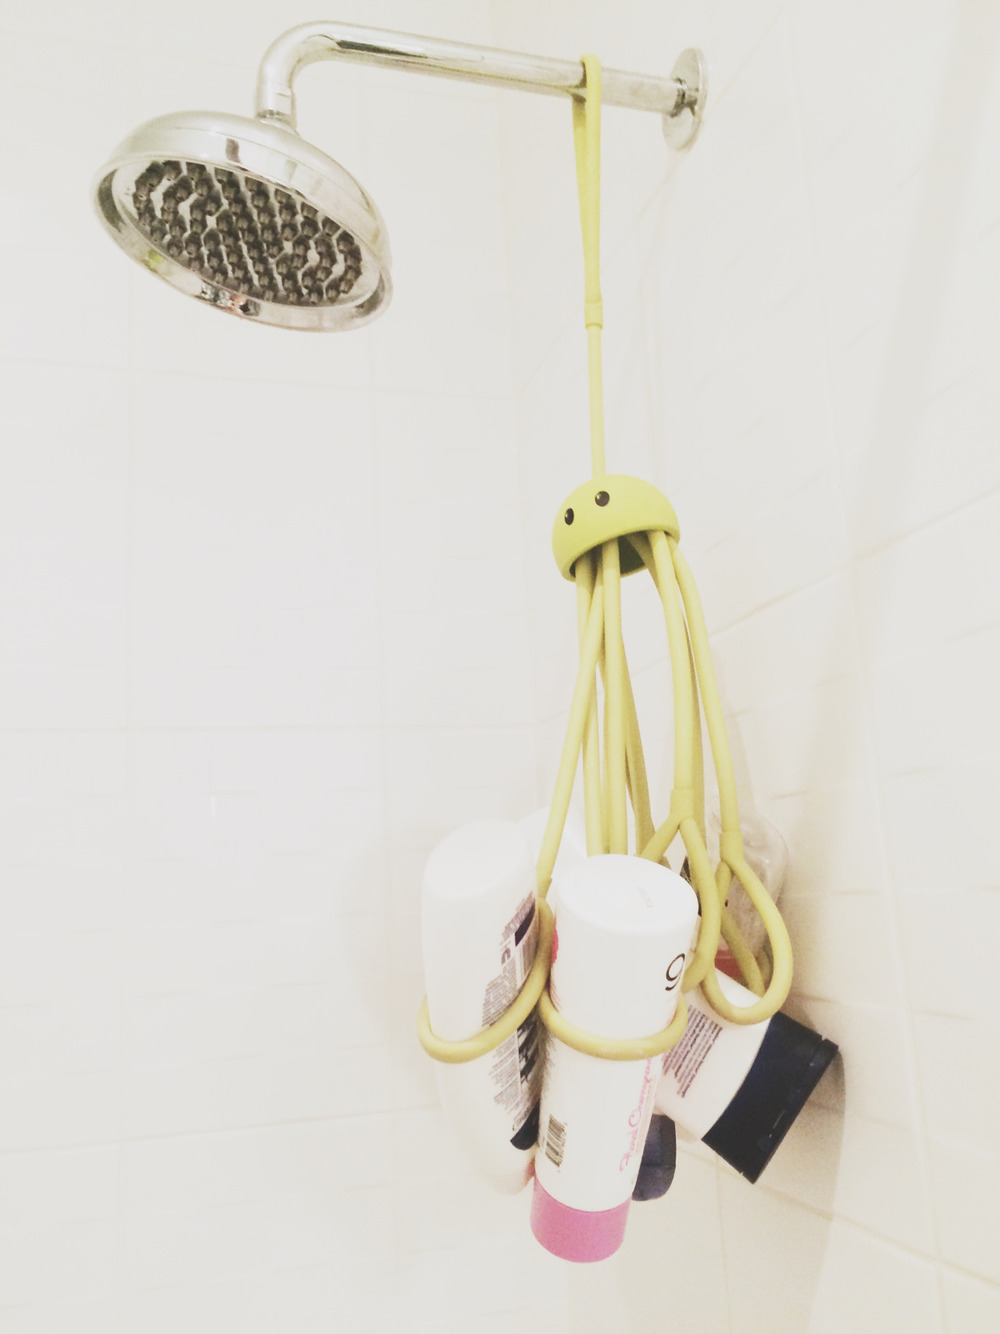 THE LITTLE THINGS Have I mentioned that we live in a small space ;) ?  Well in a small space when every inch counts, the tiniest detail can make a big difference.  I picked up this octopus shower caddy (link here) at the Dwell design show on a whim a few years back and this playful addition has come in even more handy lately.  It keeps most of our bath products off the ledges which is helpful in keeping the ledges clear of clutter and leaves the shower/tub easy to clean.  The octopus also keeps bottles off the ledges which tend to be too tempting for a chubby fingers that love the crashing sound they make when they fall in the tub. Clutter free surfaces in any home are a welcome site but in a small space they are a necessity and anything that easily accomplishes this feat like this Octupus shower caddy is a big win.  Now if only something some this simple could tackle the clutter on our entry bench…